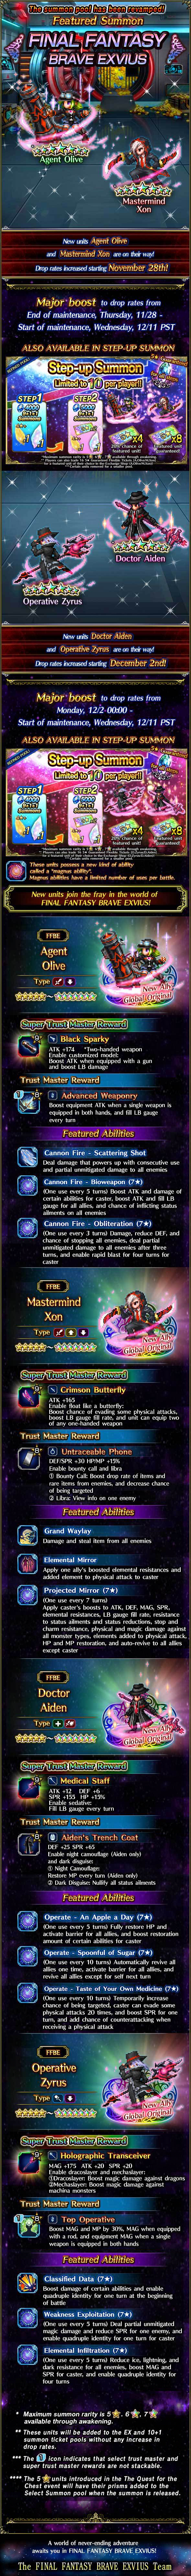 Invocations du moment, boutique d'échange et ticket flexible d'unité 5★ garantie - FFBE - Black Fryday - du 28/11 au 12/12/19 20191125BlackFridayFeaturedSummon